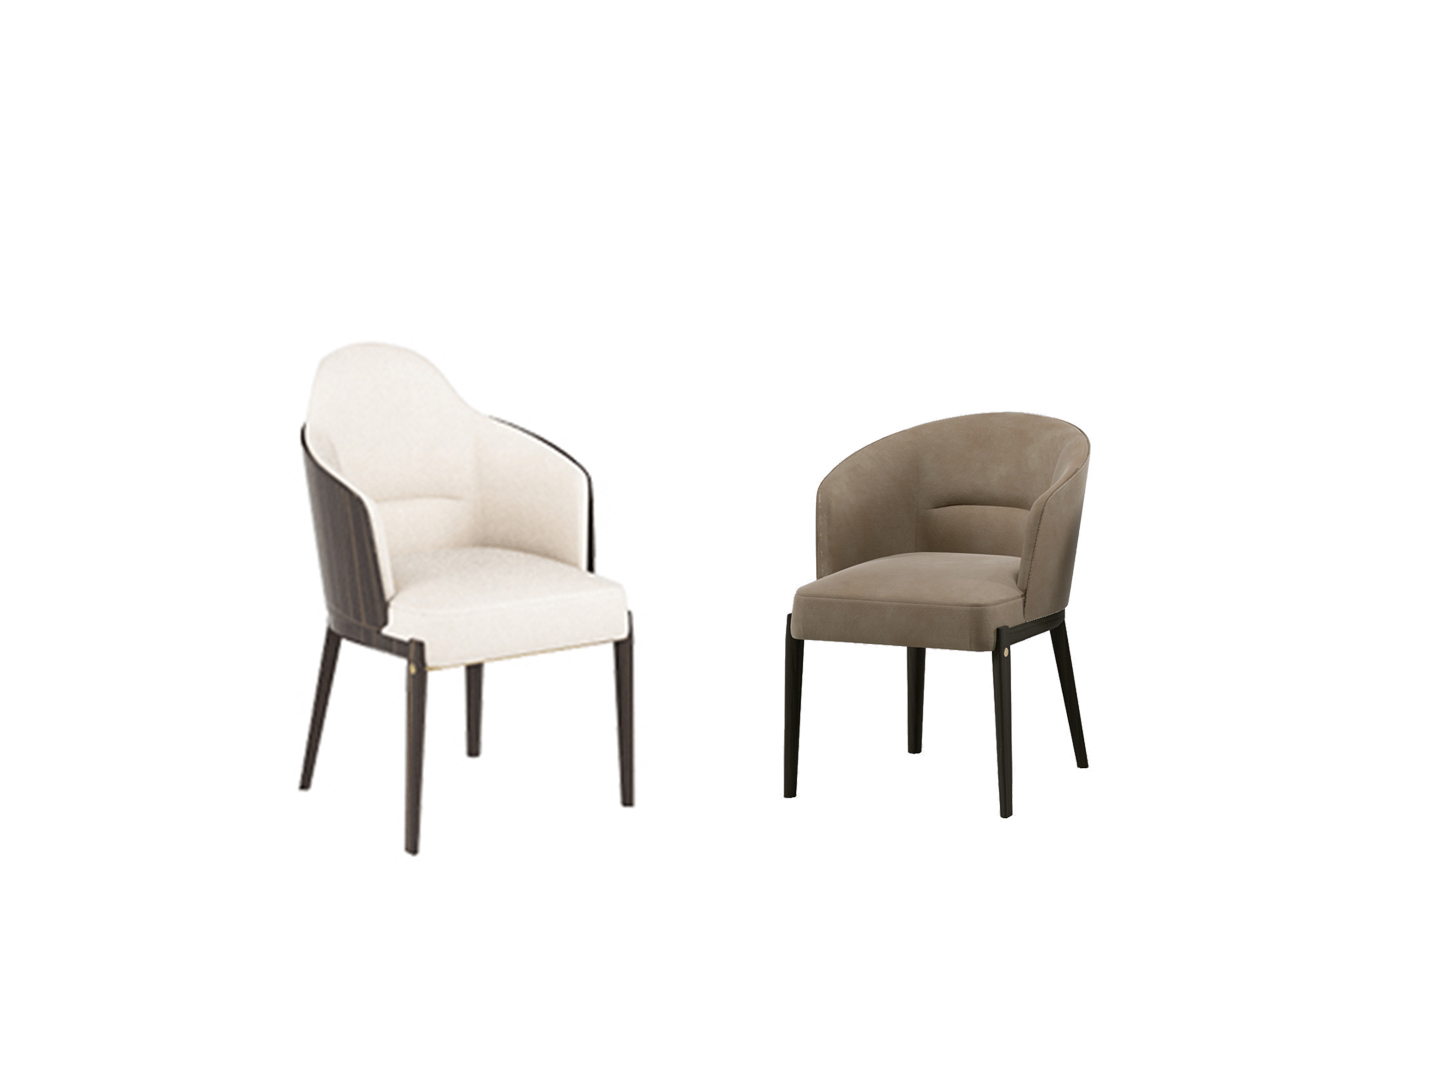 N°5 high and low chair